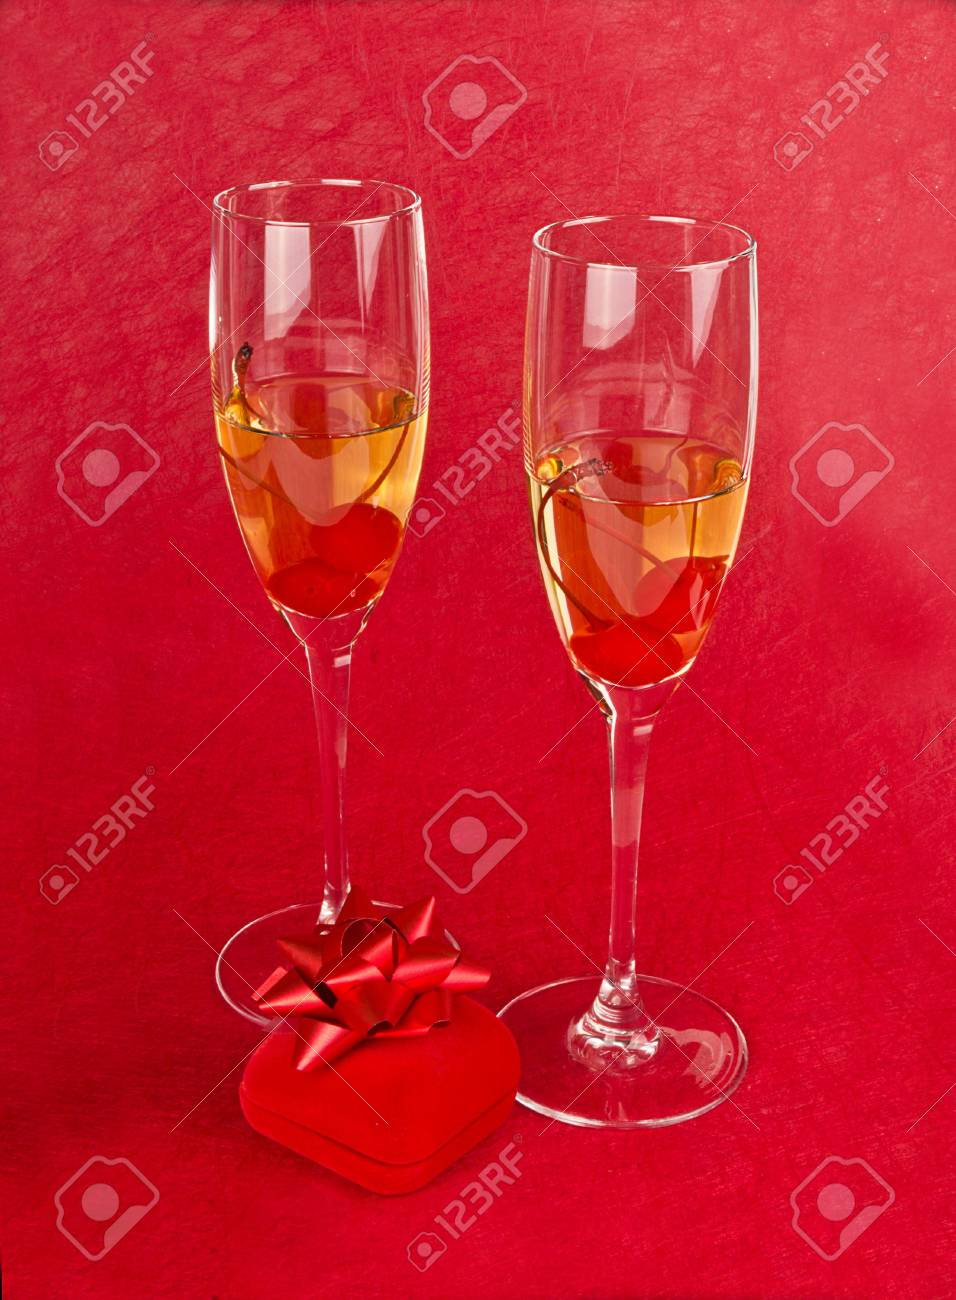 Two Valentine s champagne glasses with jewelery on white background Stock Photo - 17197549